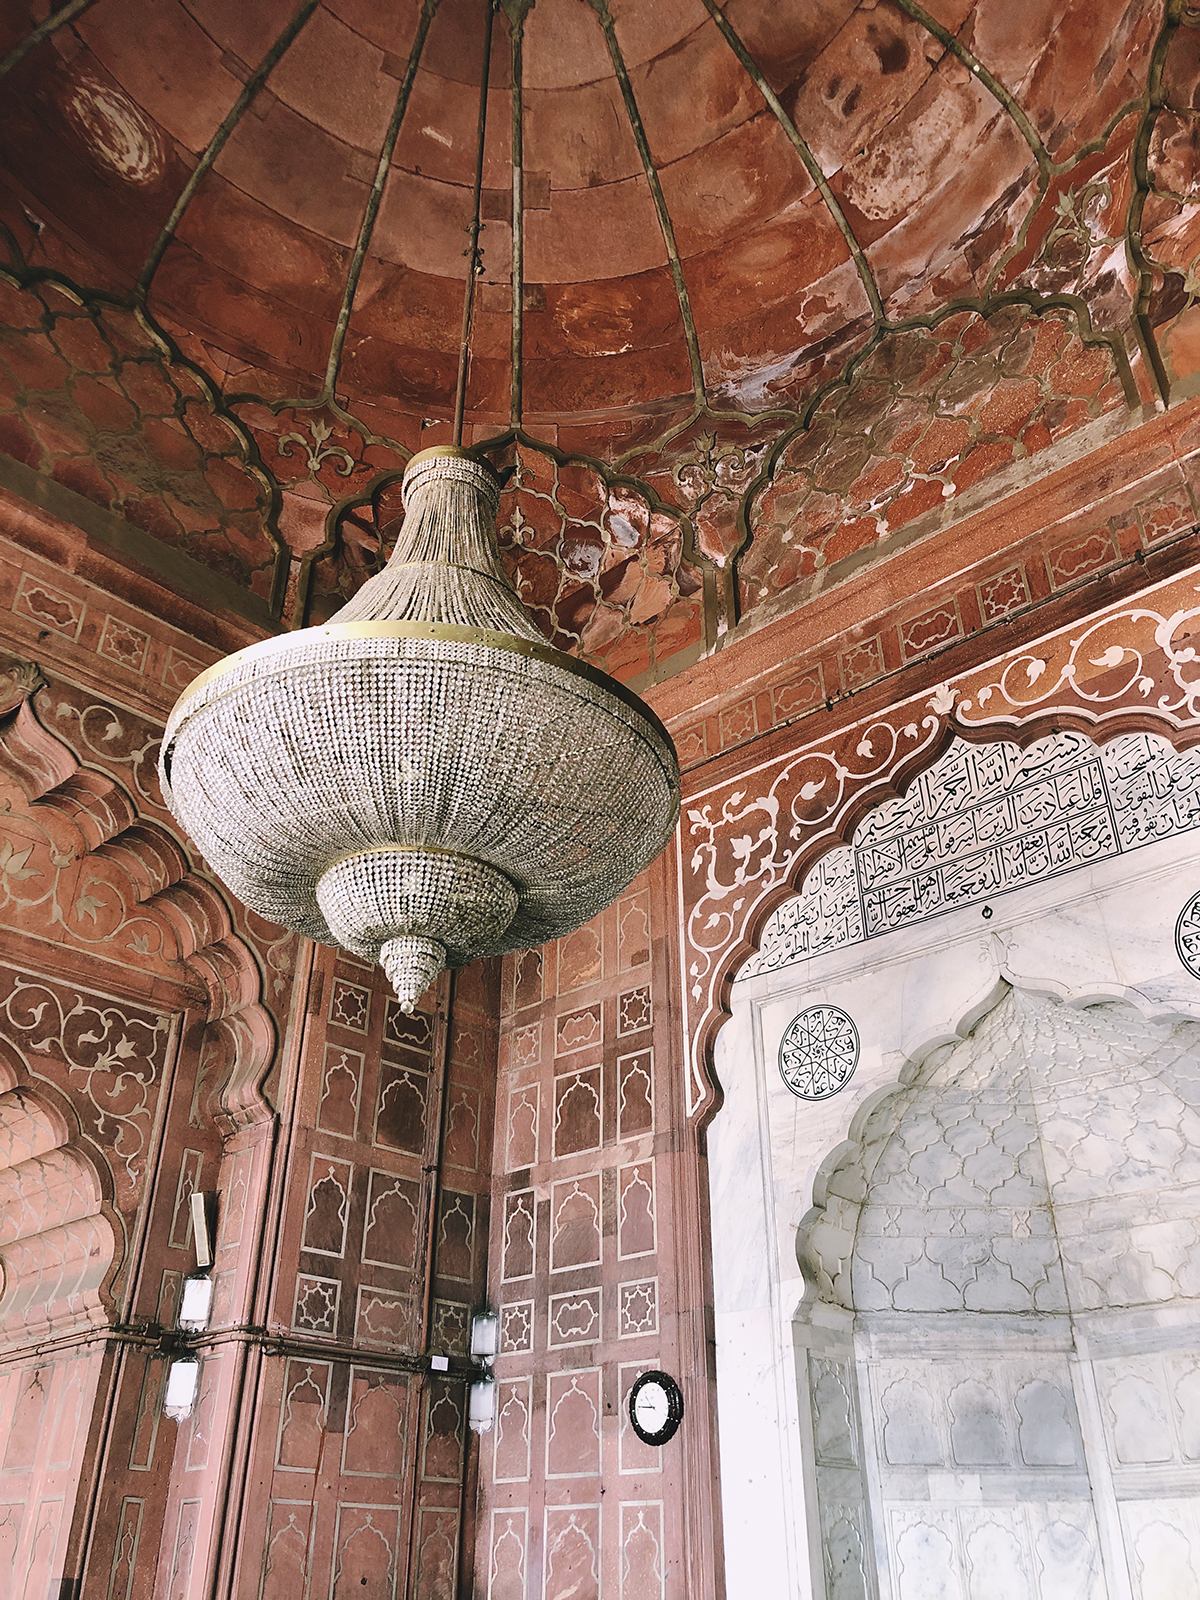 Intricate sandstone interior of Jama Masjid mosque